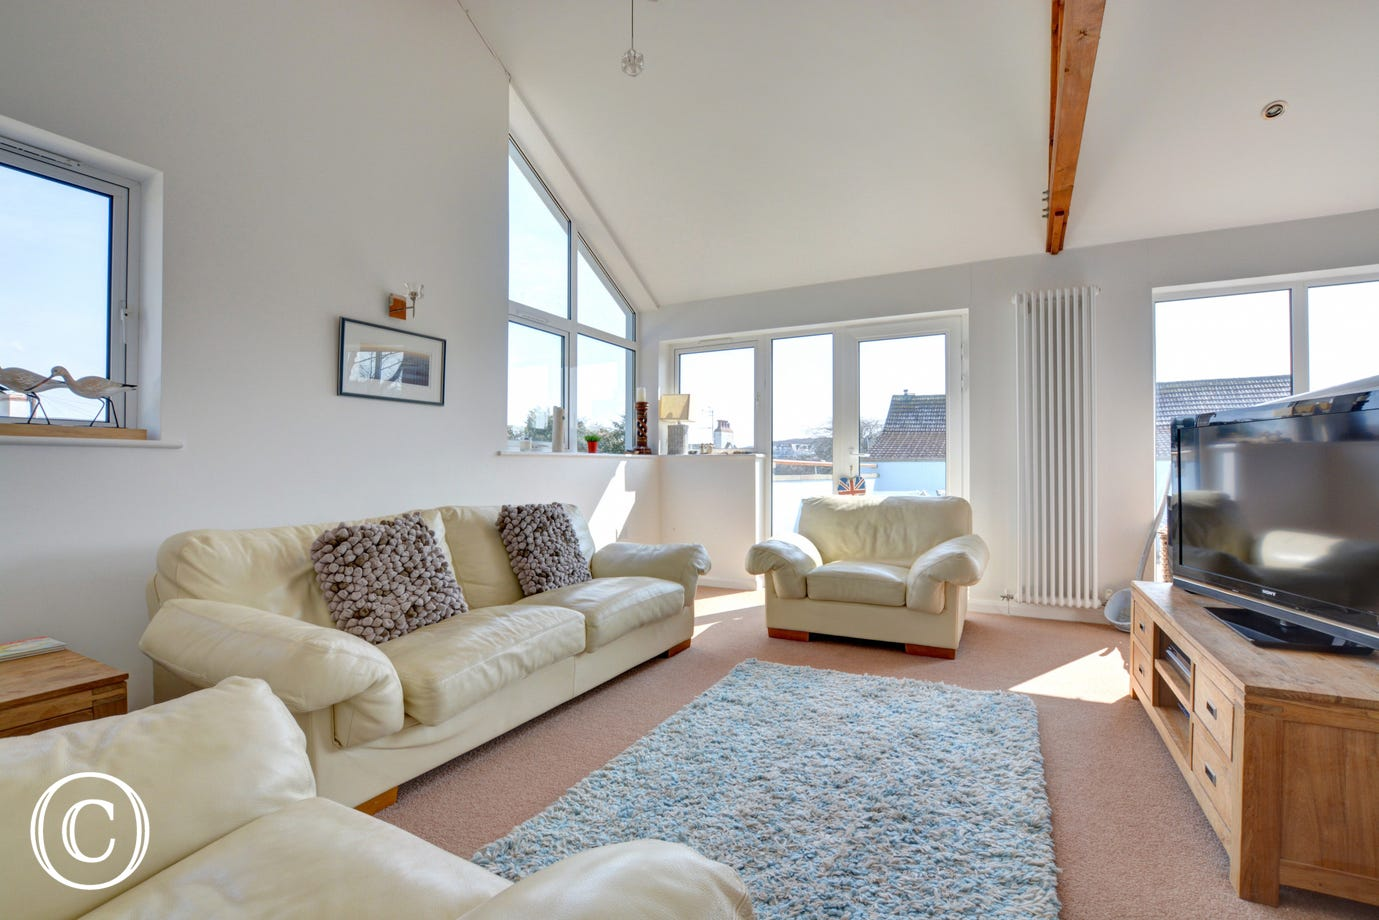 A great family self catering property with open plan living space